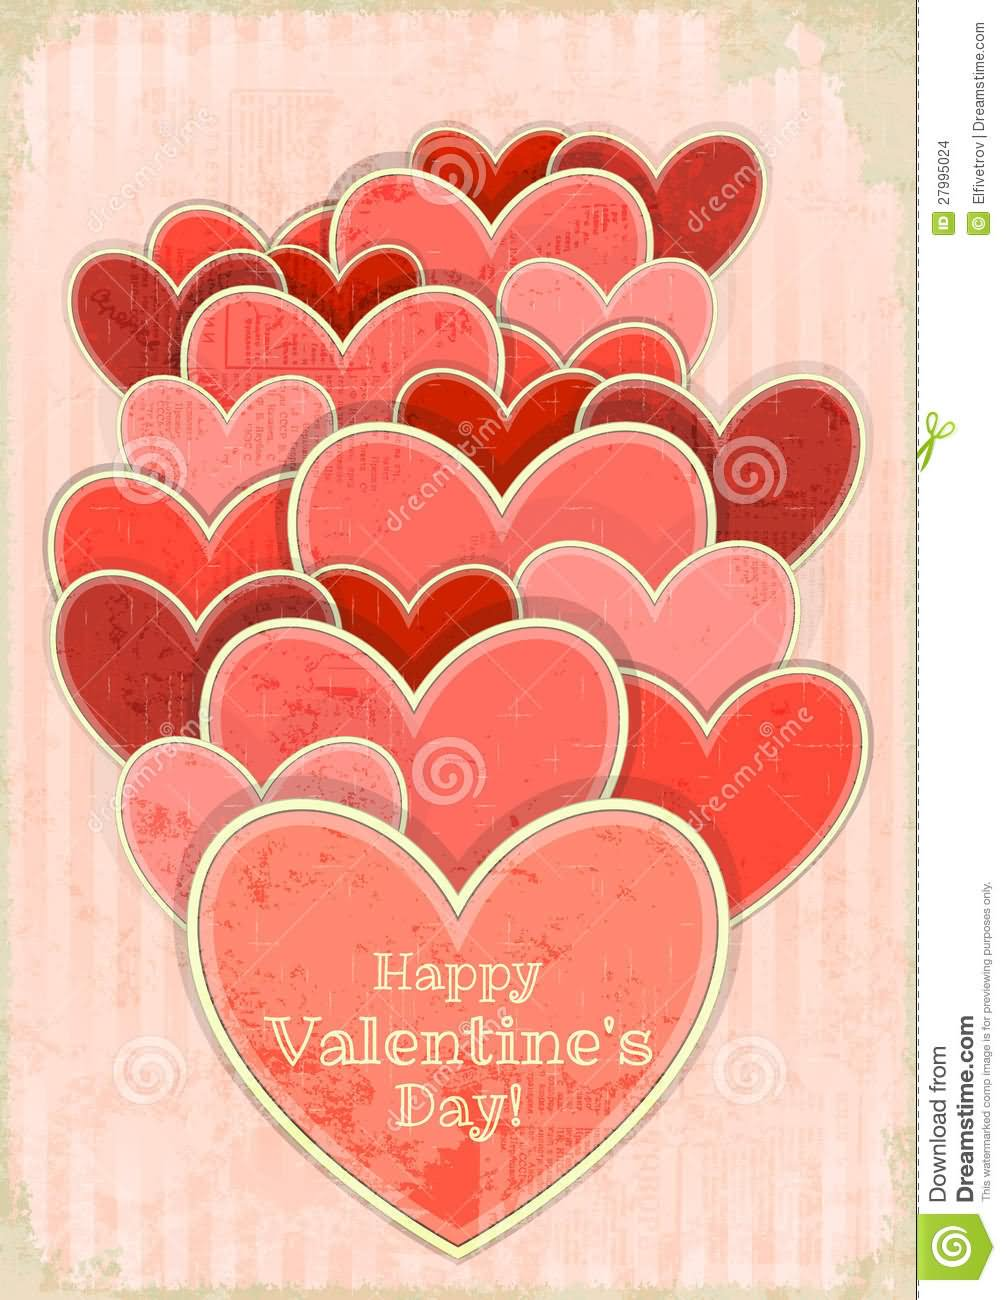 30 very best valentine day greeting cards beautiful hearts happy valentines day greeting card kristyandbryce Image collections